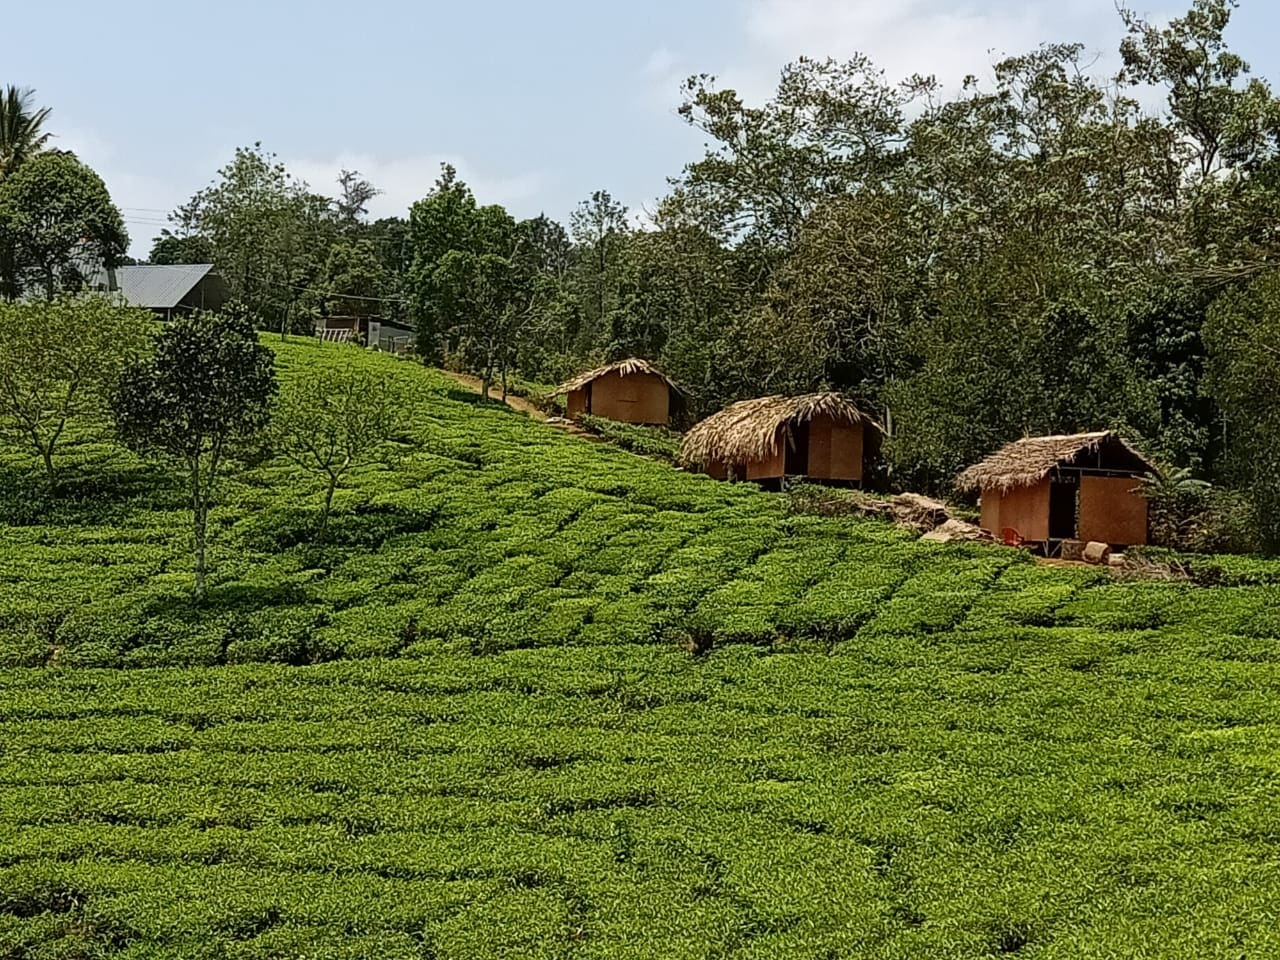 Distant view of the Eaglerock Holiday huts. Set to enjoy the panoramic view of the tea gardens.